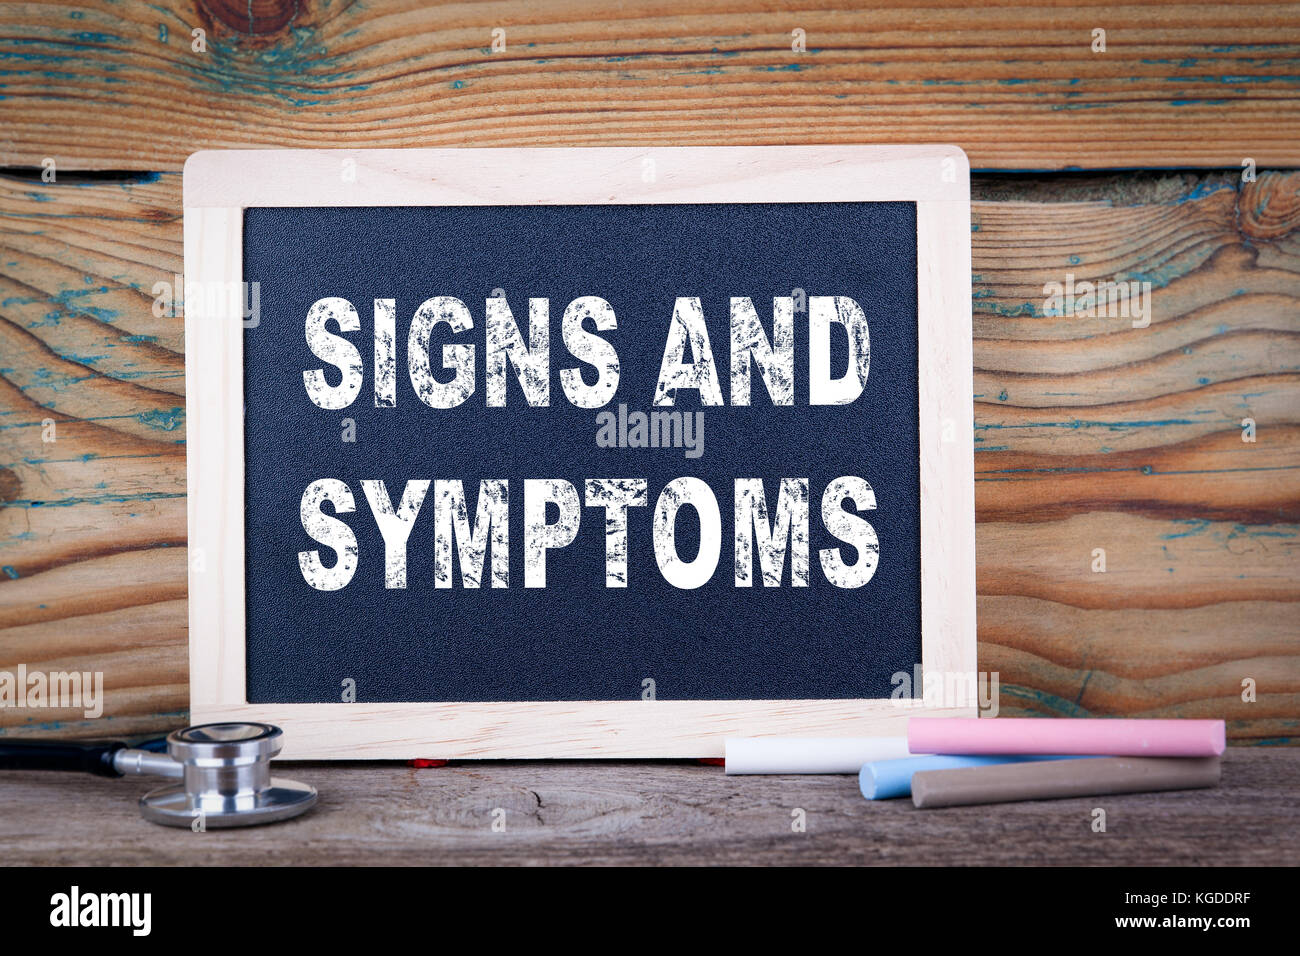 signs and symptoms. Chalkboard on a wooden background - Stock Image